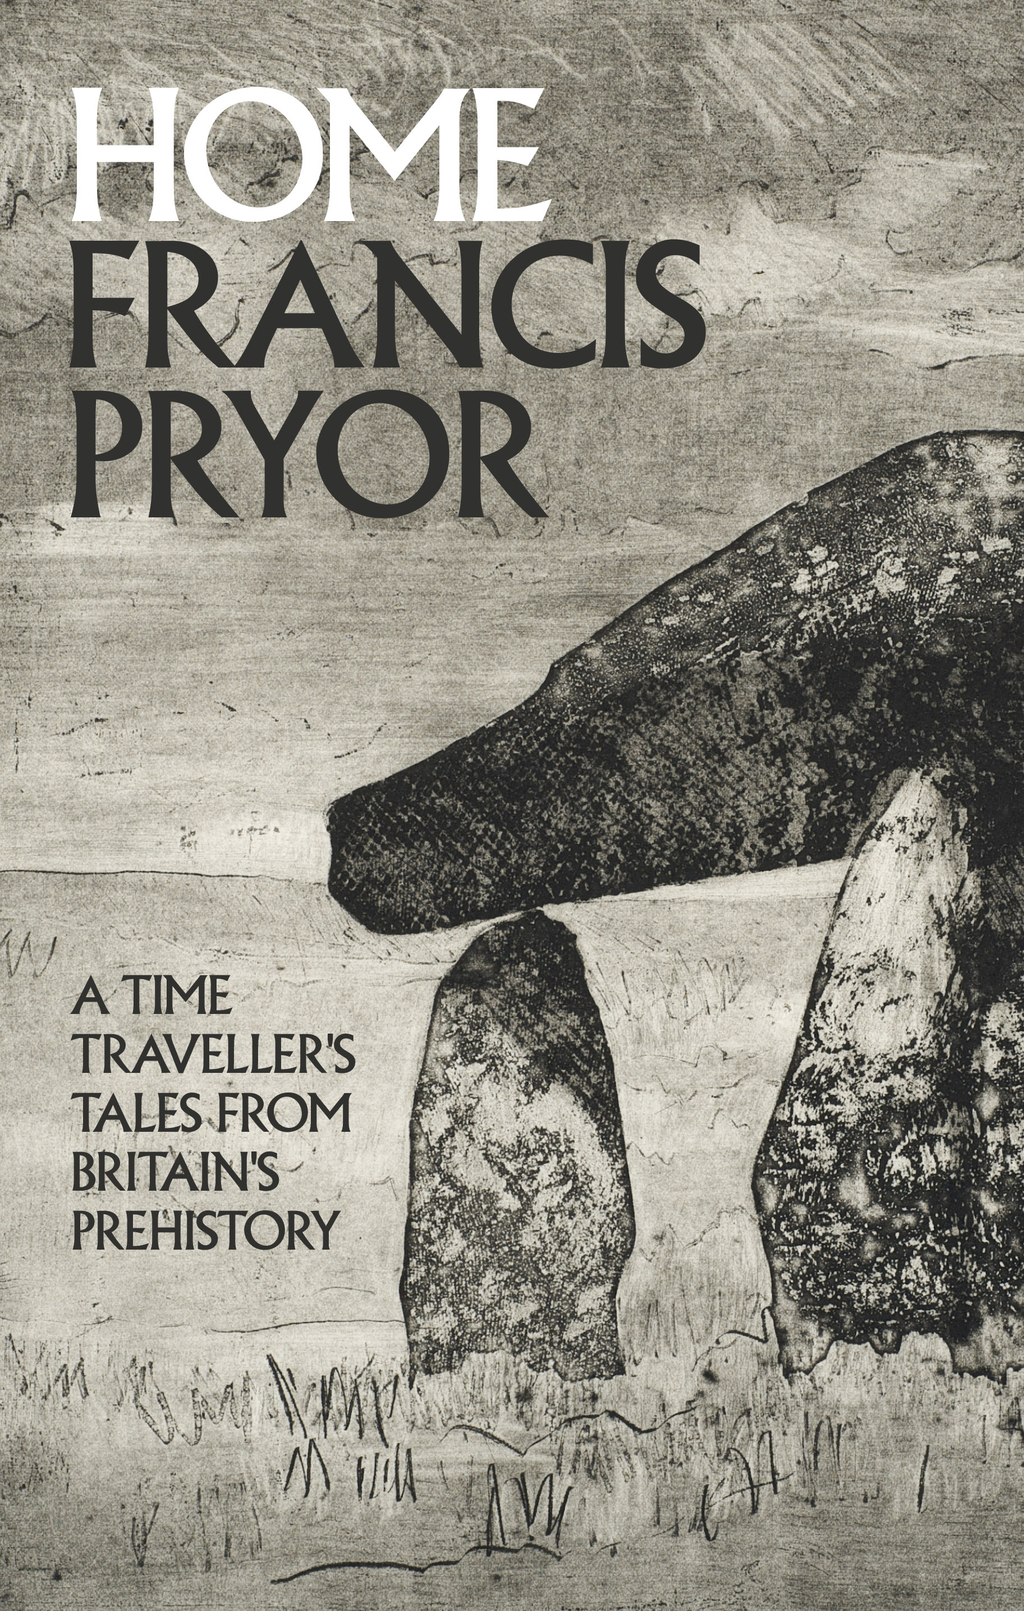 Home A Time Traveller's Tales from Britain's Prehistory